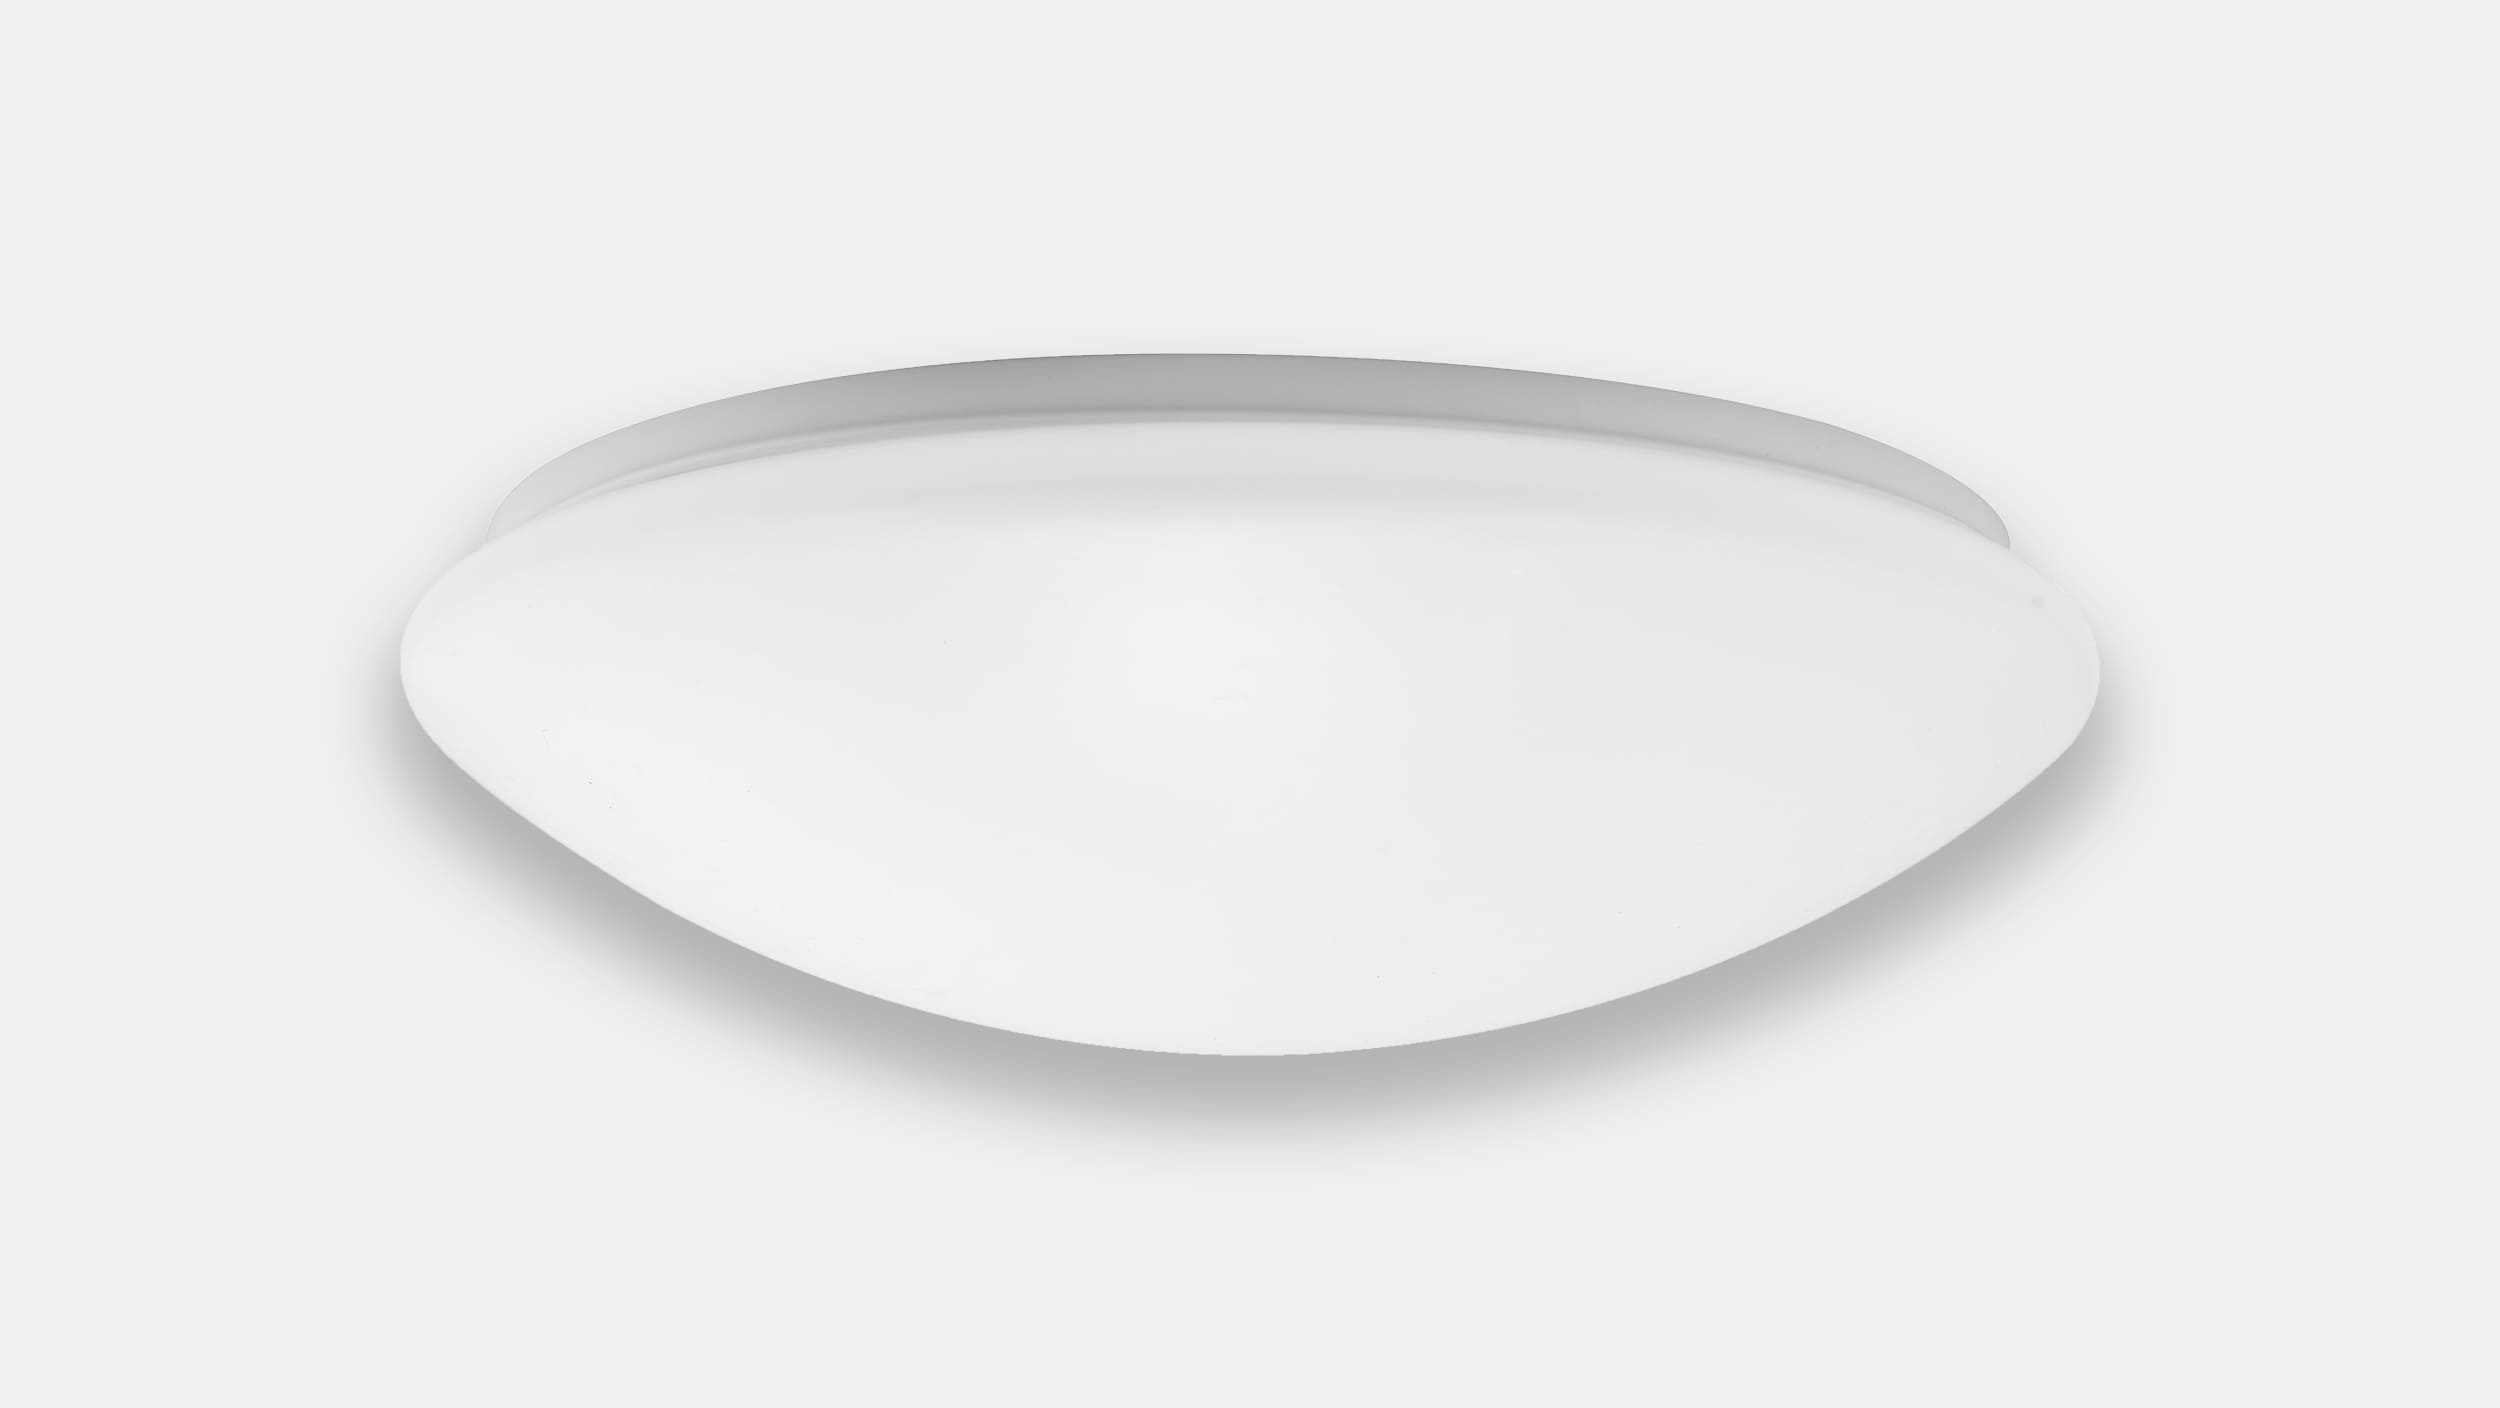 Round luminaire with motion sensor